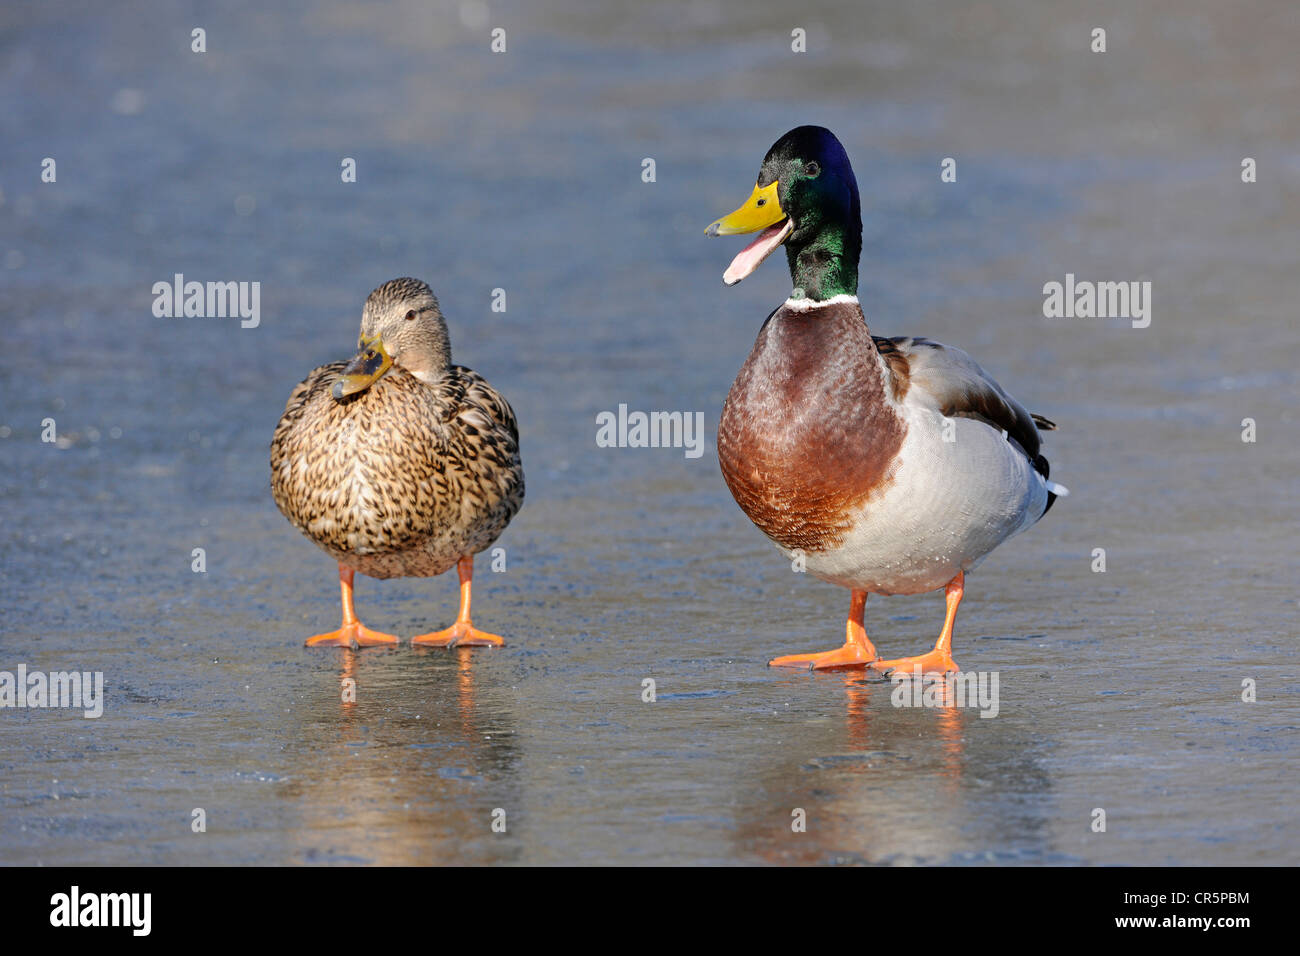 Mallard Ducks (Anas platyrhynchos), male and female standing on a frozen lake, the male has the beak wide open and - Stock Image